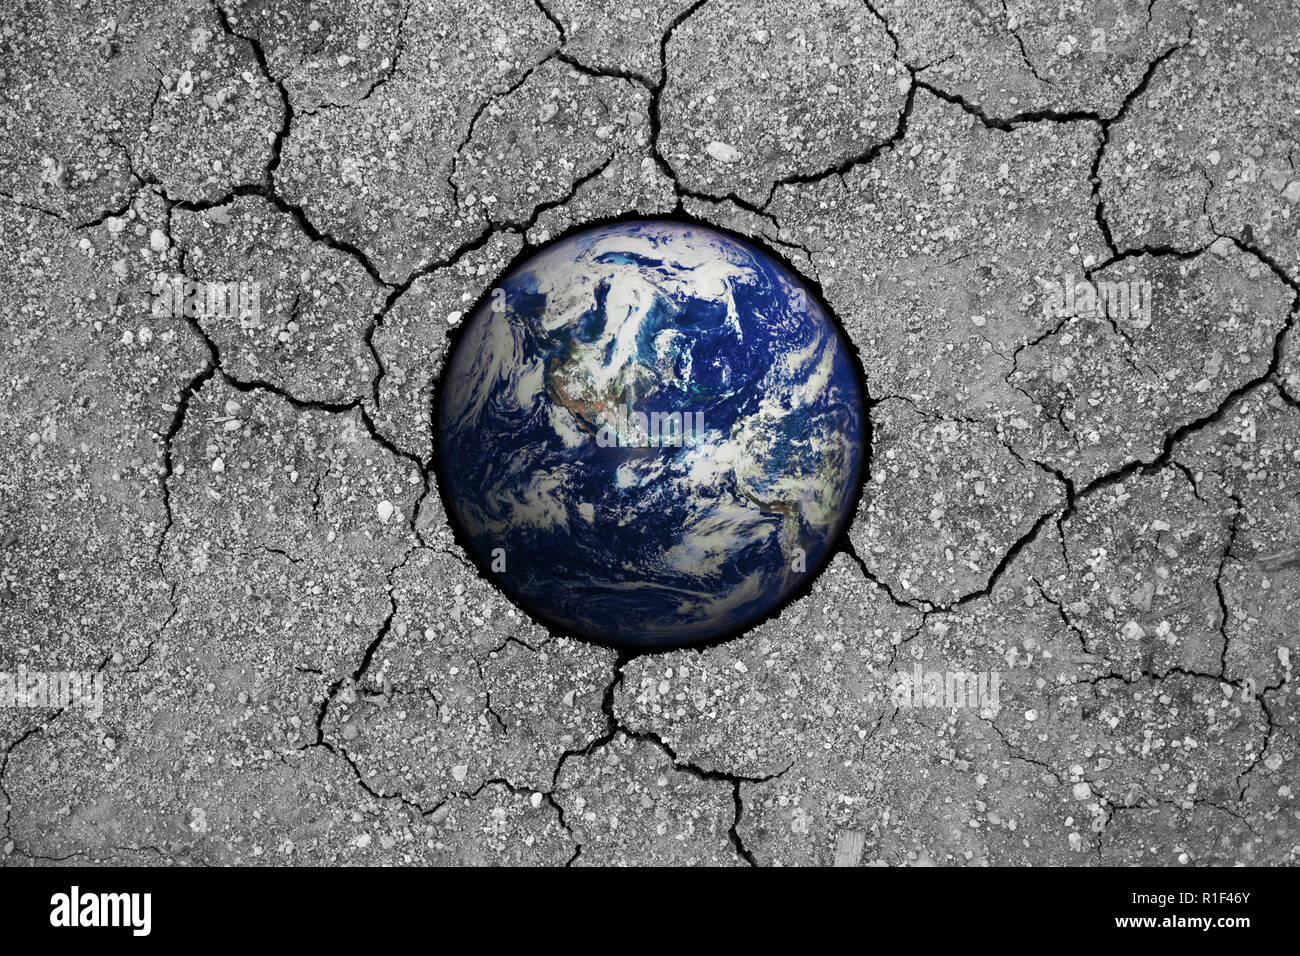 13e1687fb49 Dying planet earth half buried in dry cracked clay representing global  warming